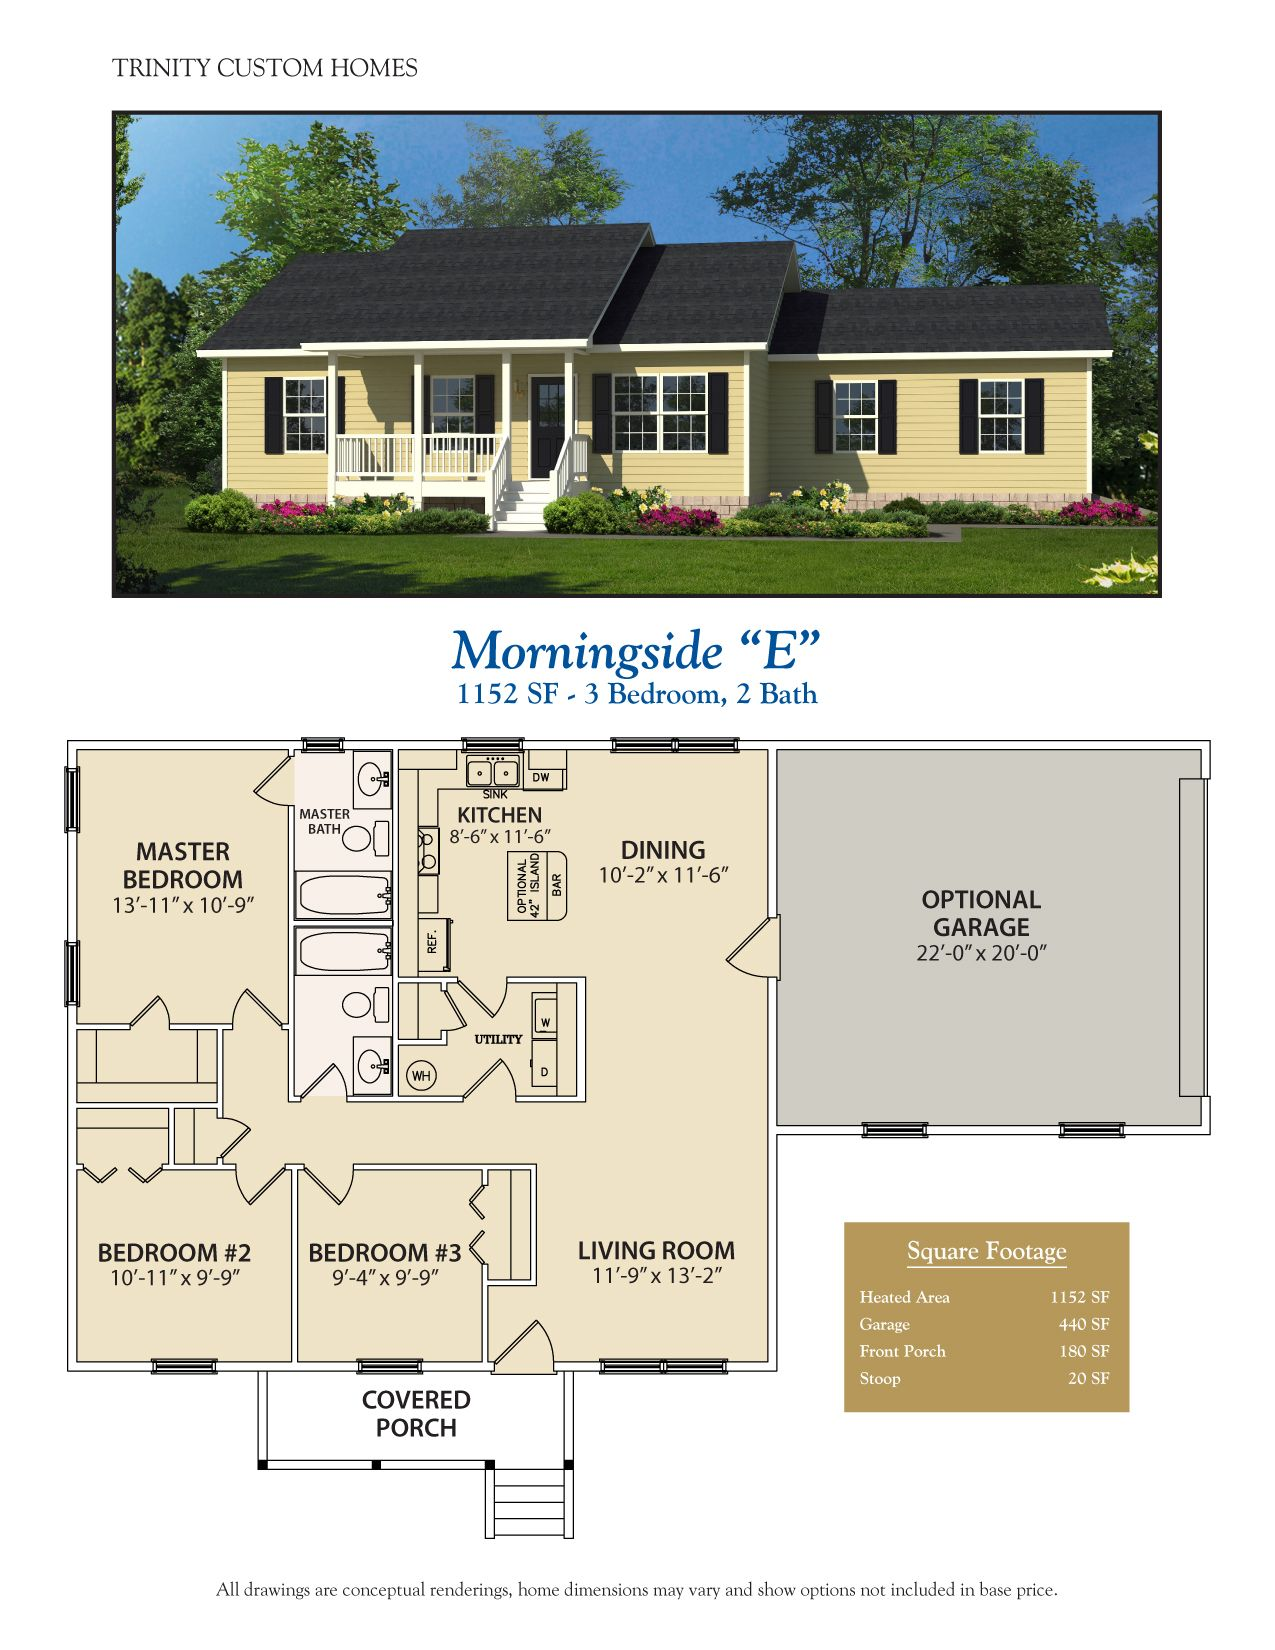 Floor Plans Trinity Custom Homes Georgia Dream House Plans Custom Homes New House Plans